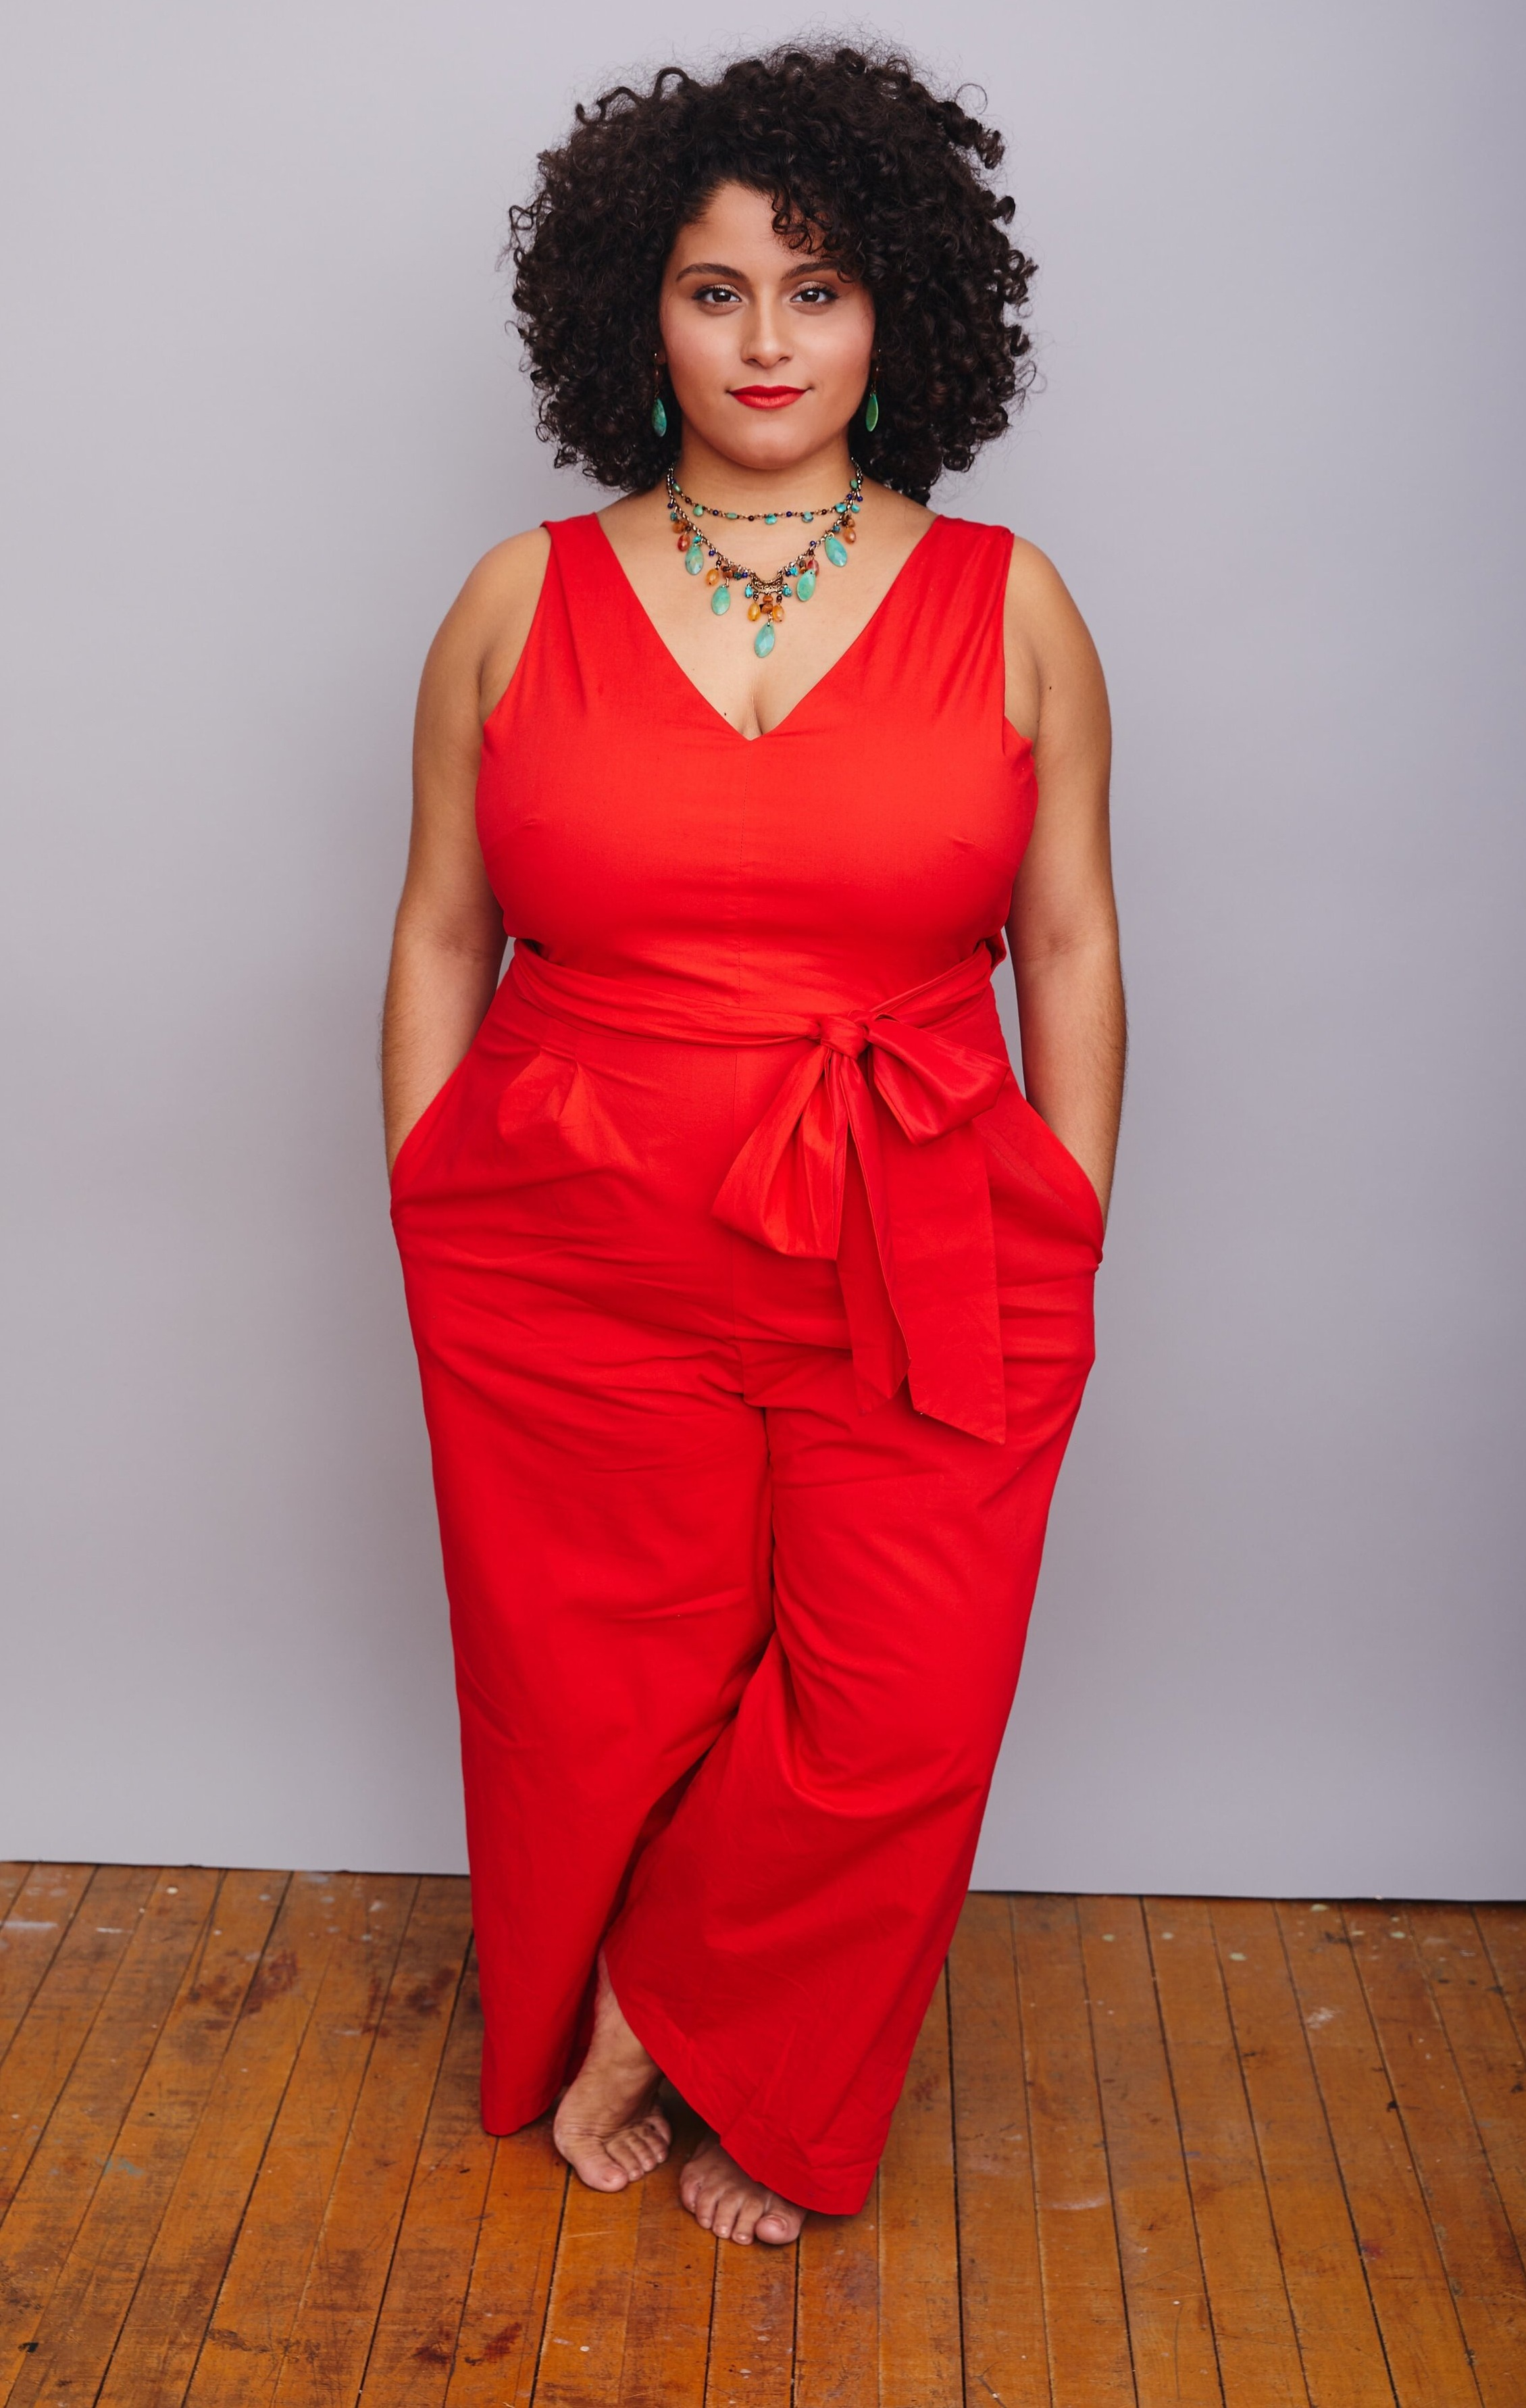 Elisa Galindez | Proud Latinx Actor, Singer, Dancer, and Artist from the Bronx | Photo by  Ted Ely